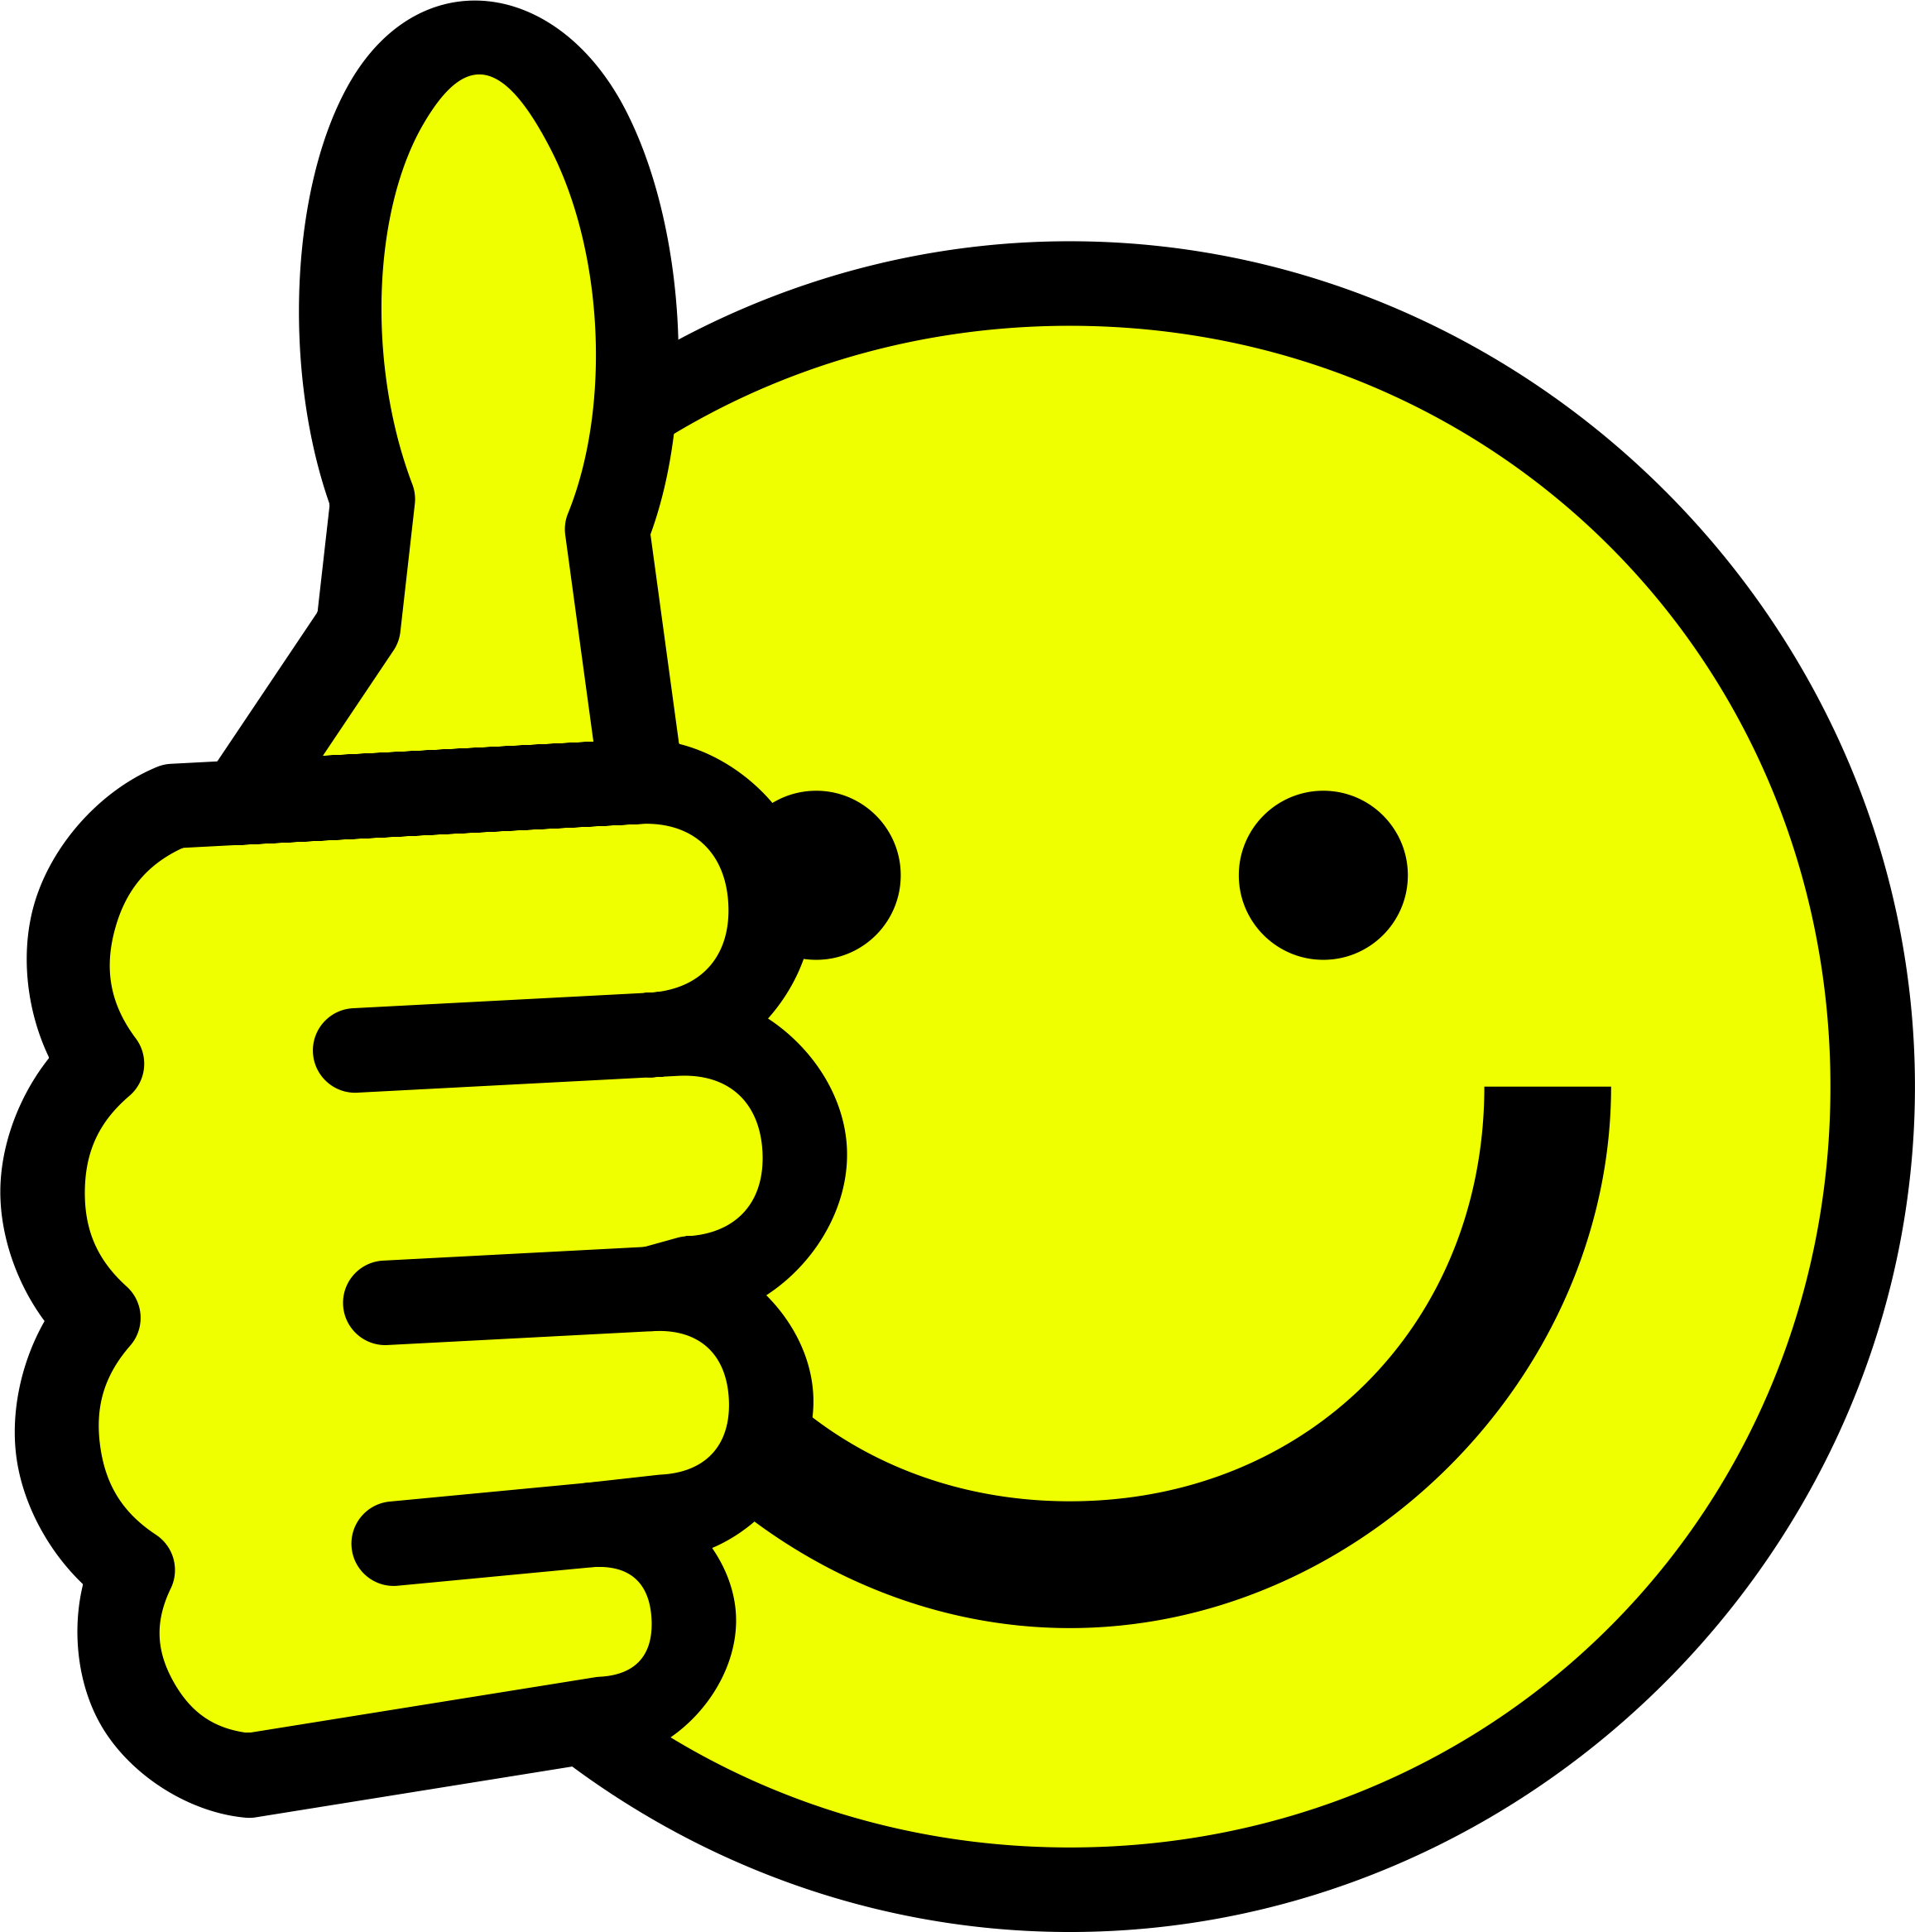 Thumbs up smiley by skotan